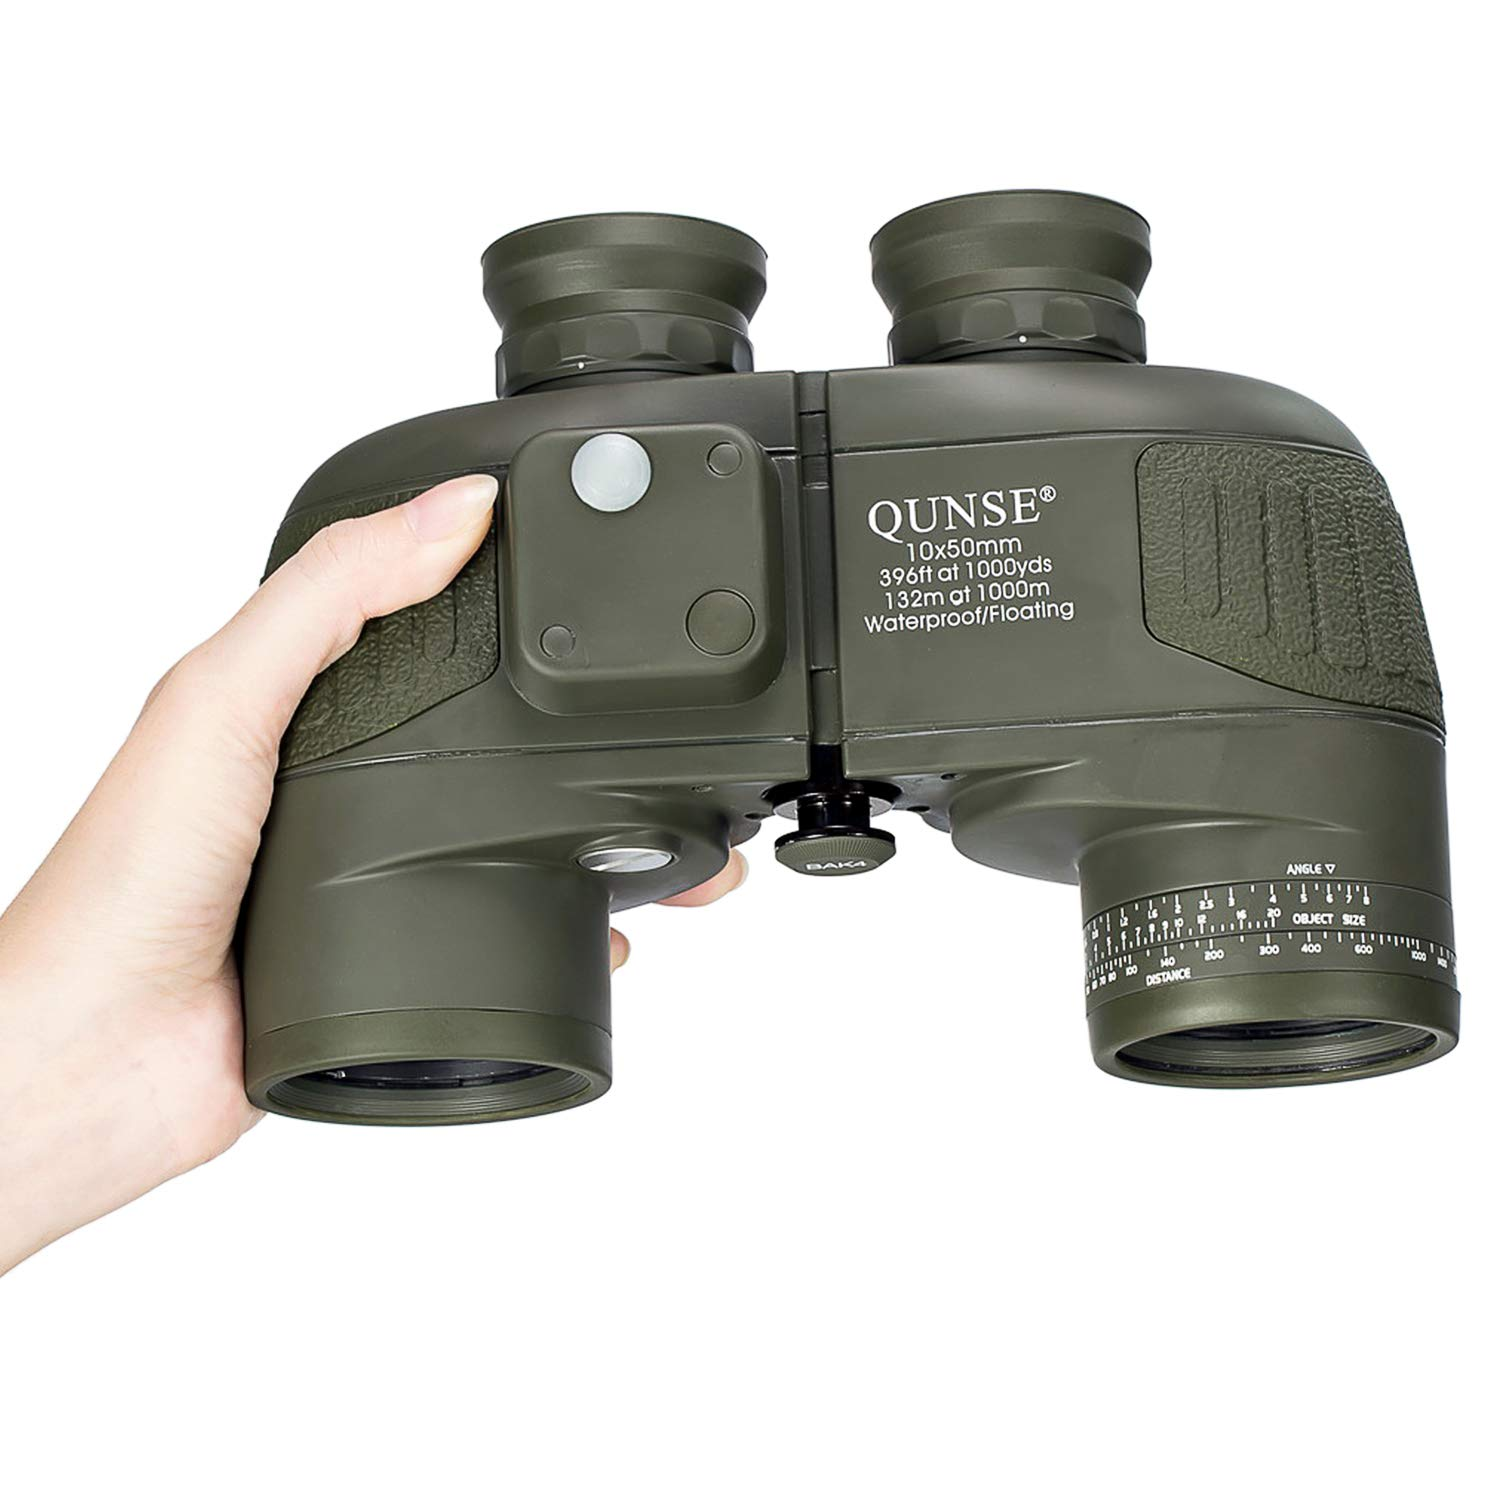 QUNSE Military HD Binoculars for Bird Watching, with Compass and Rangefinder, 10x50 Large Object Lens Large View BAK4, with Binocular Harness Strap, Waterproof by QUNSE